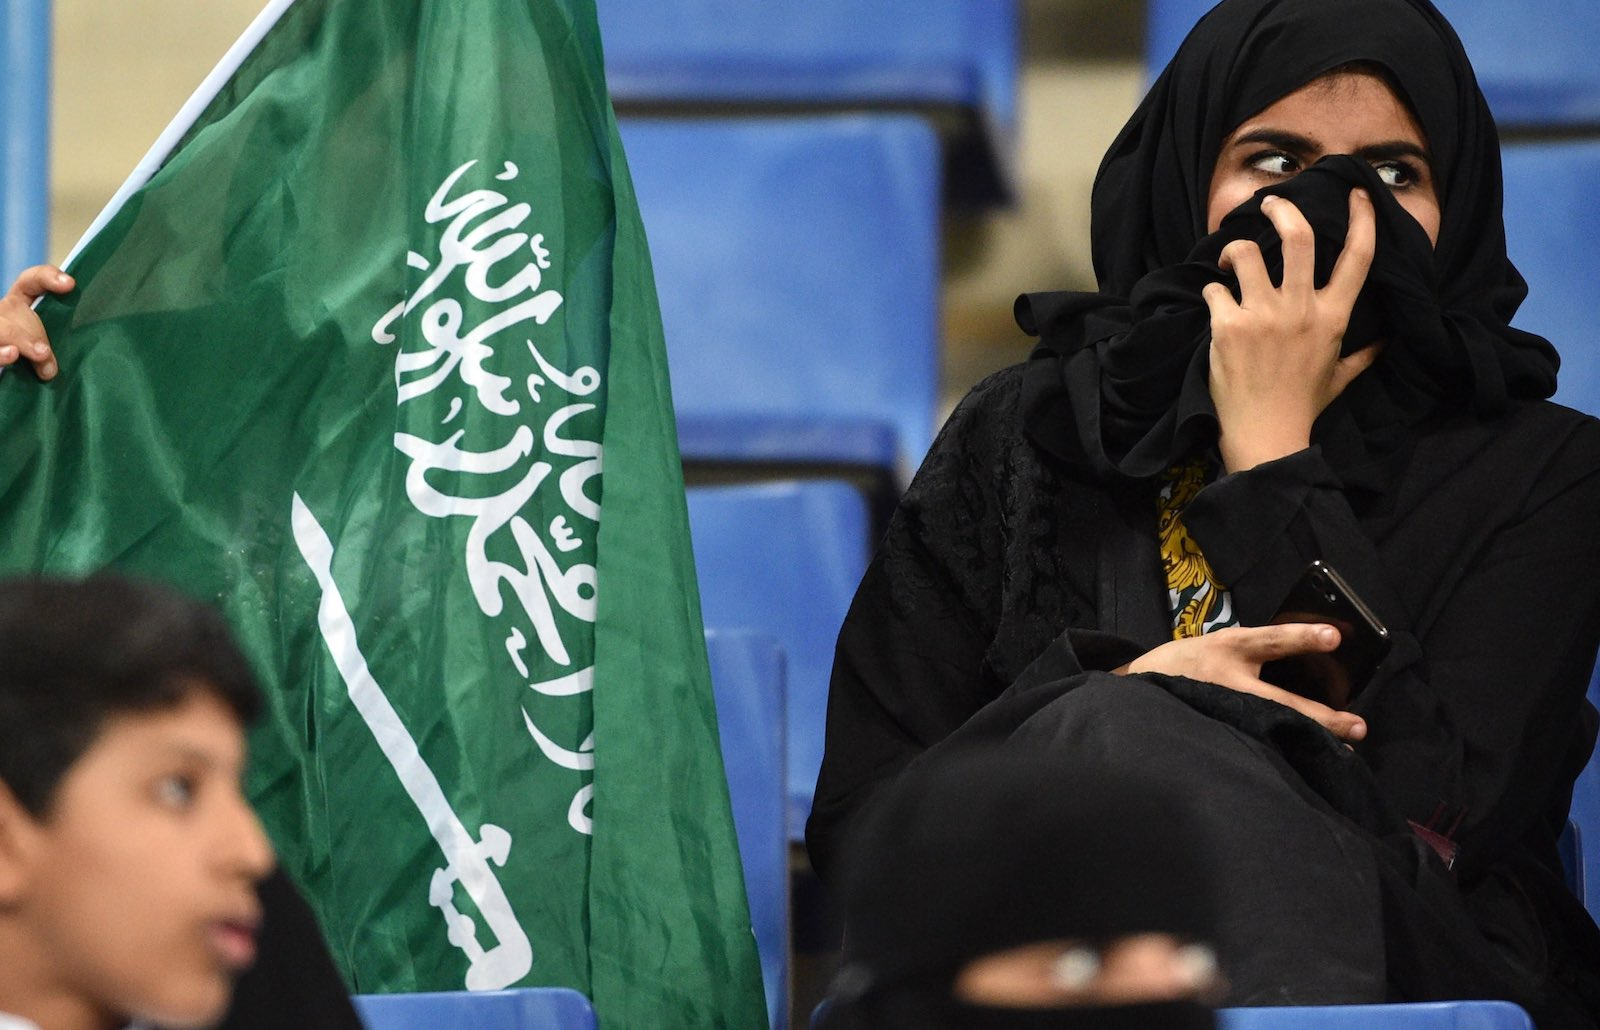 In Saudi Arabia, guardianship restrictions last from birth until death (Photo: Fayez Nureldine via Getty)